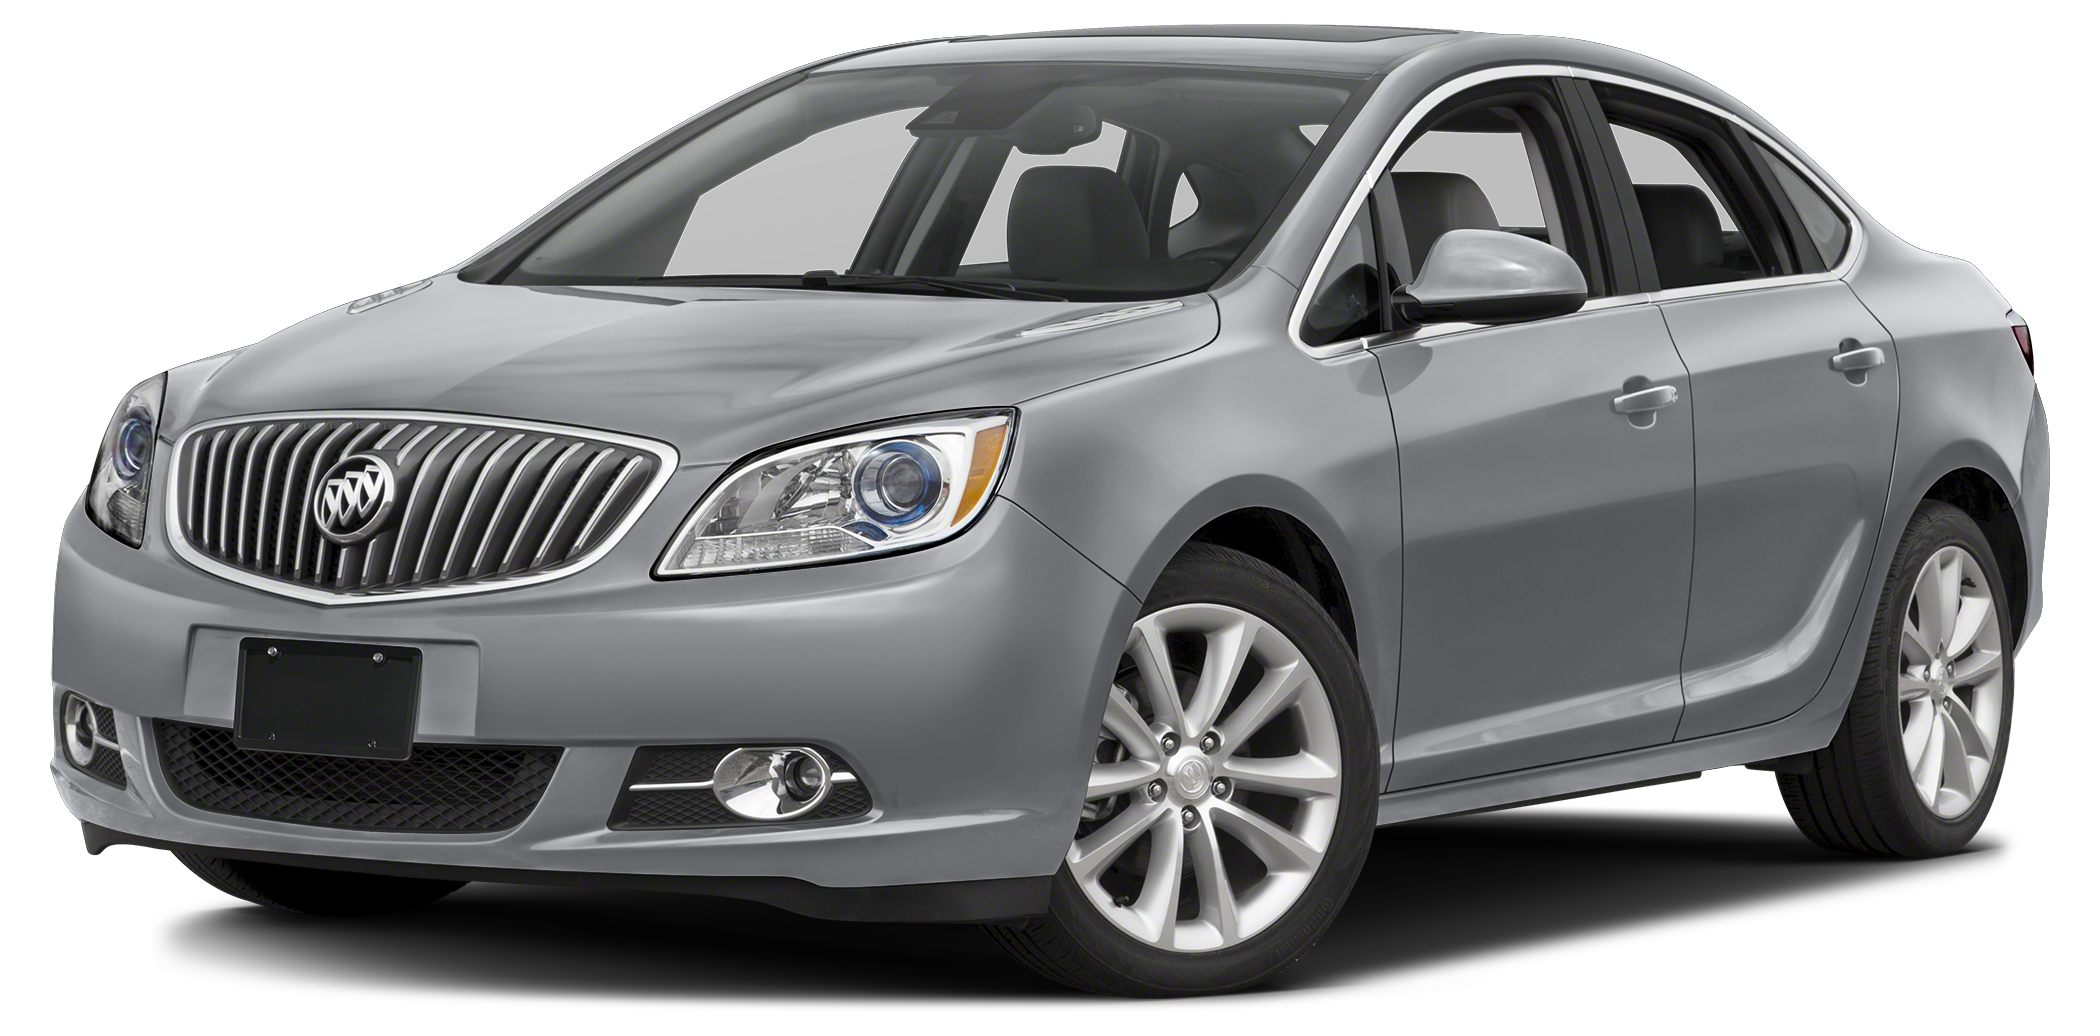 2015 Buick Verano Base There are other vehicles and then there is the Buick Verano  It is one of